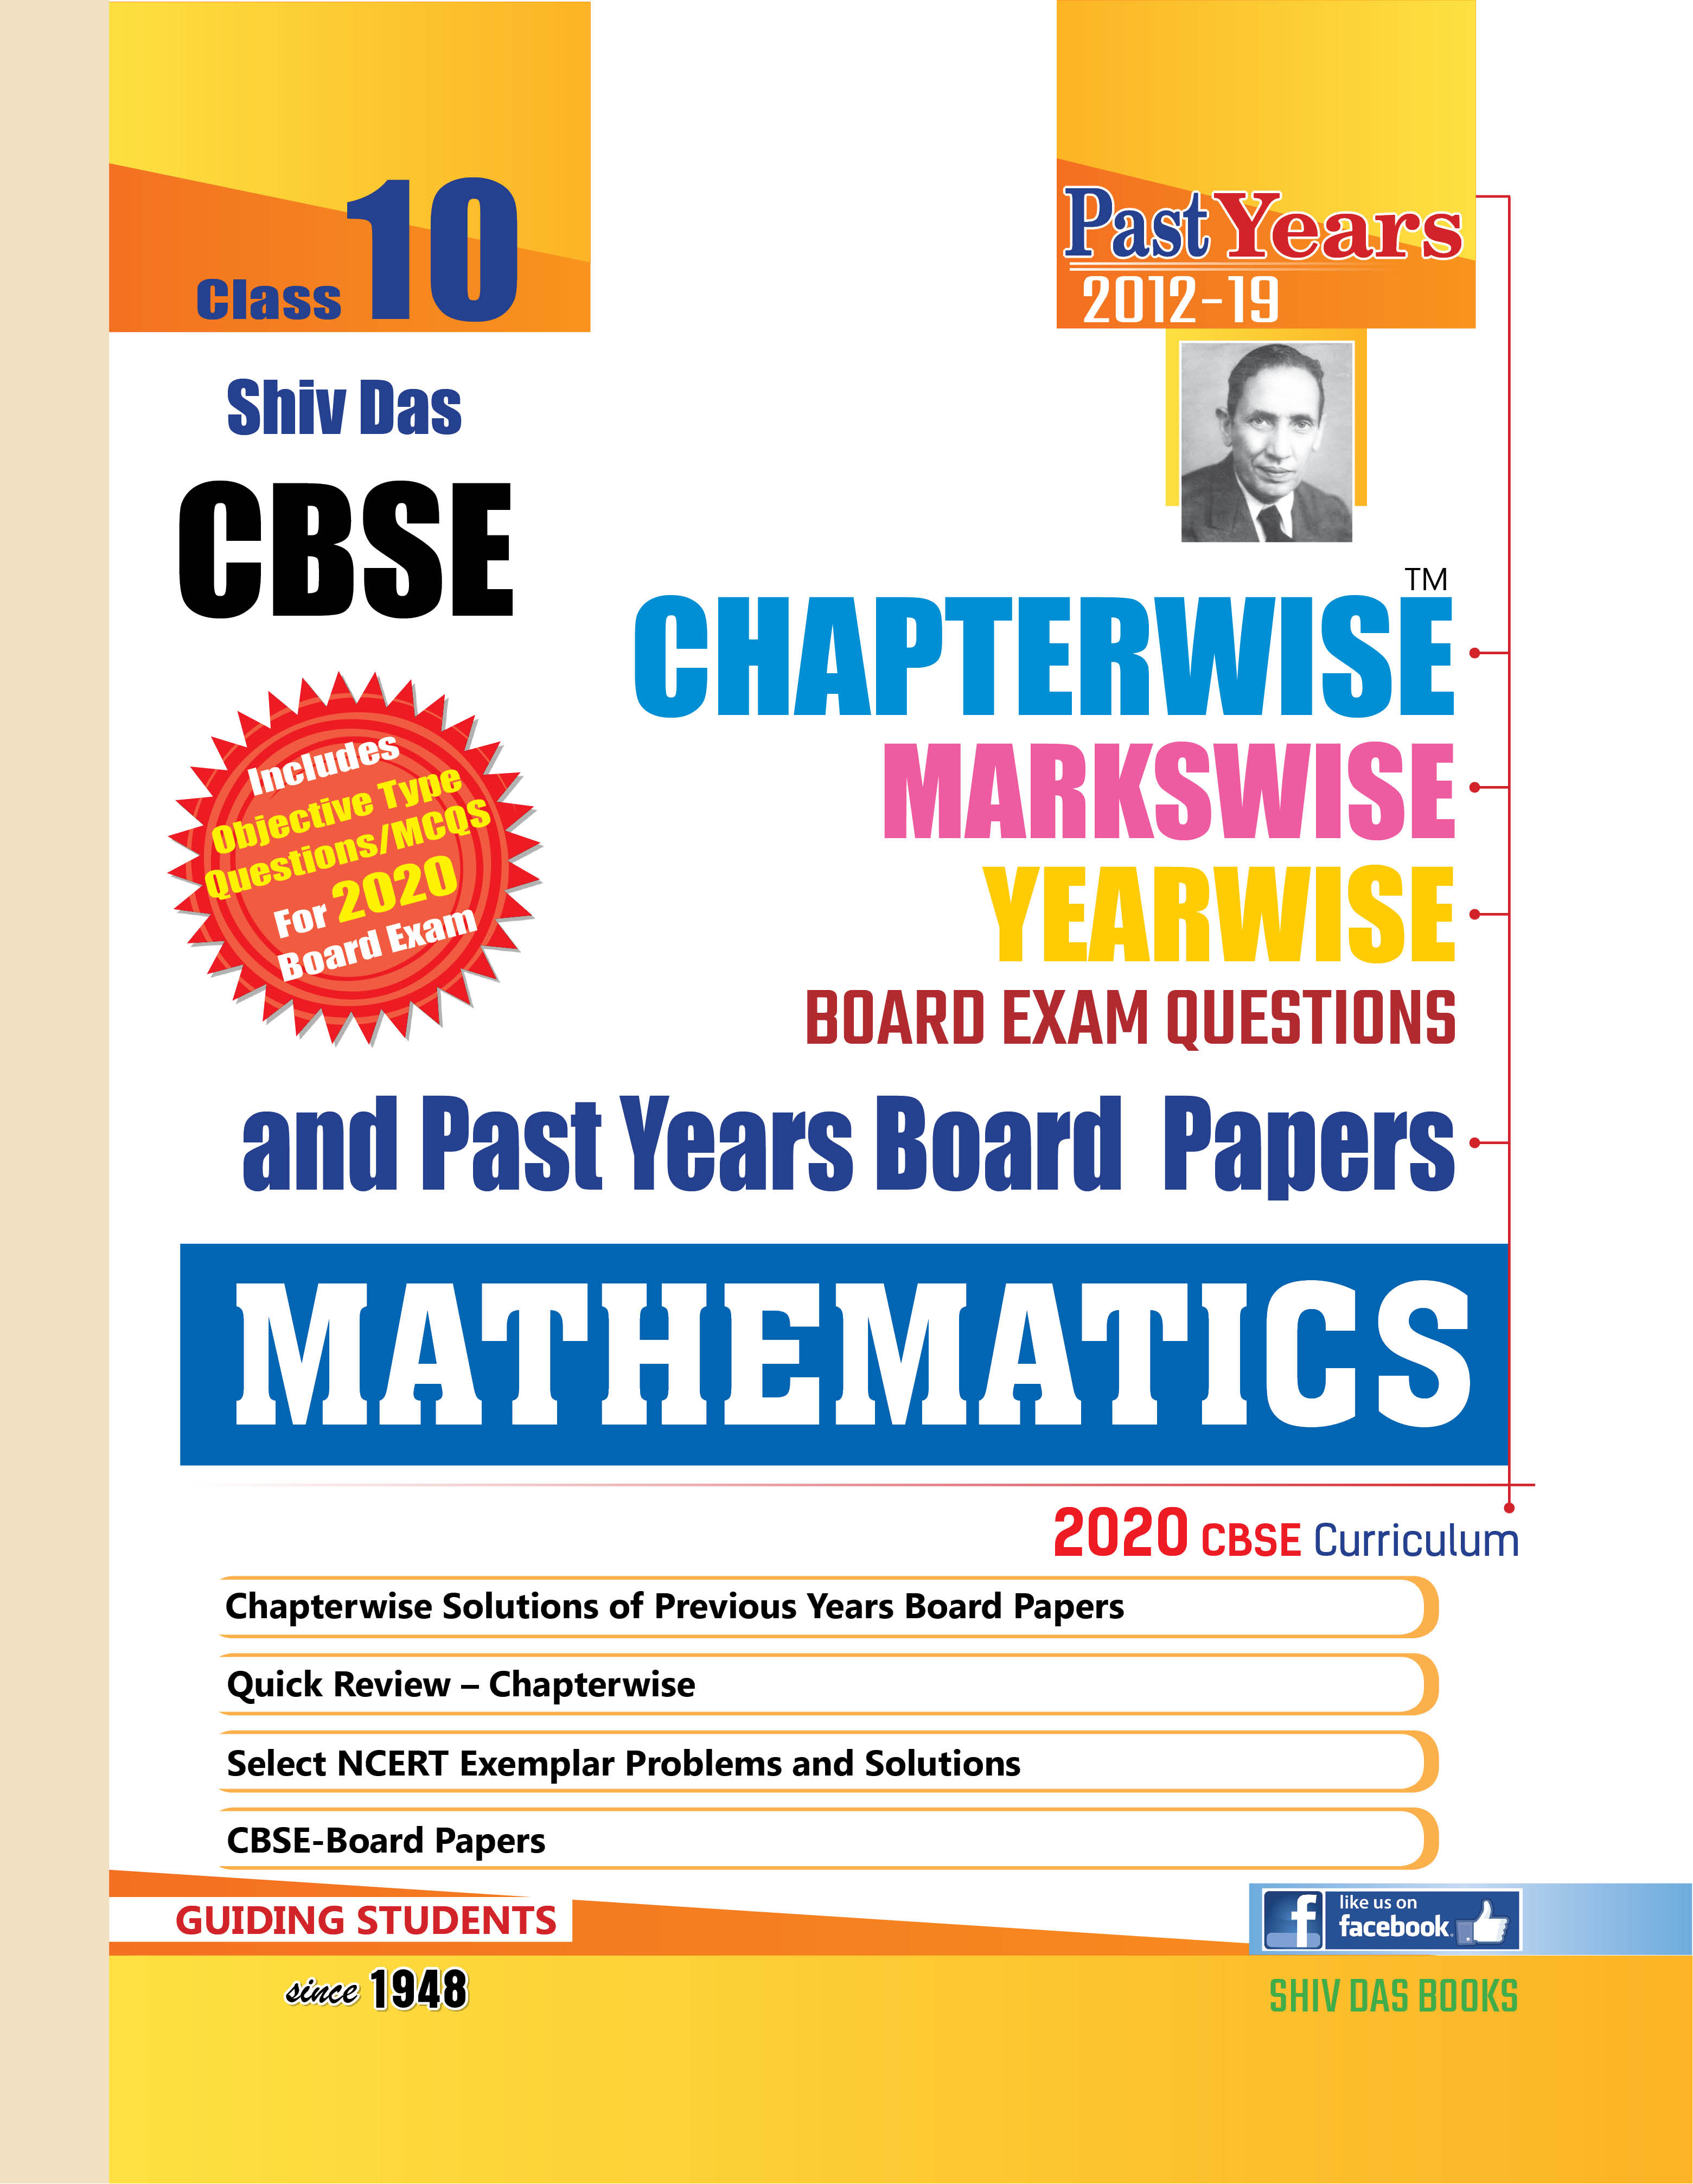 Shiv Das CBSE Chapterwise Markswise Yearwise Board Exam Questions Bank for Class 10 Maths (2020 Board Exam Edition)